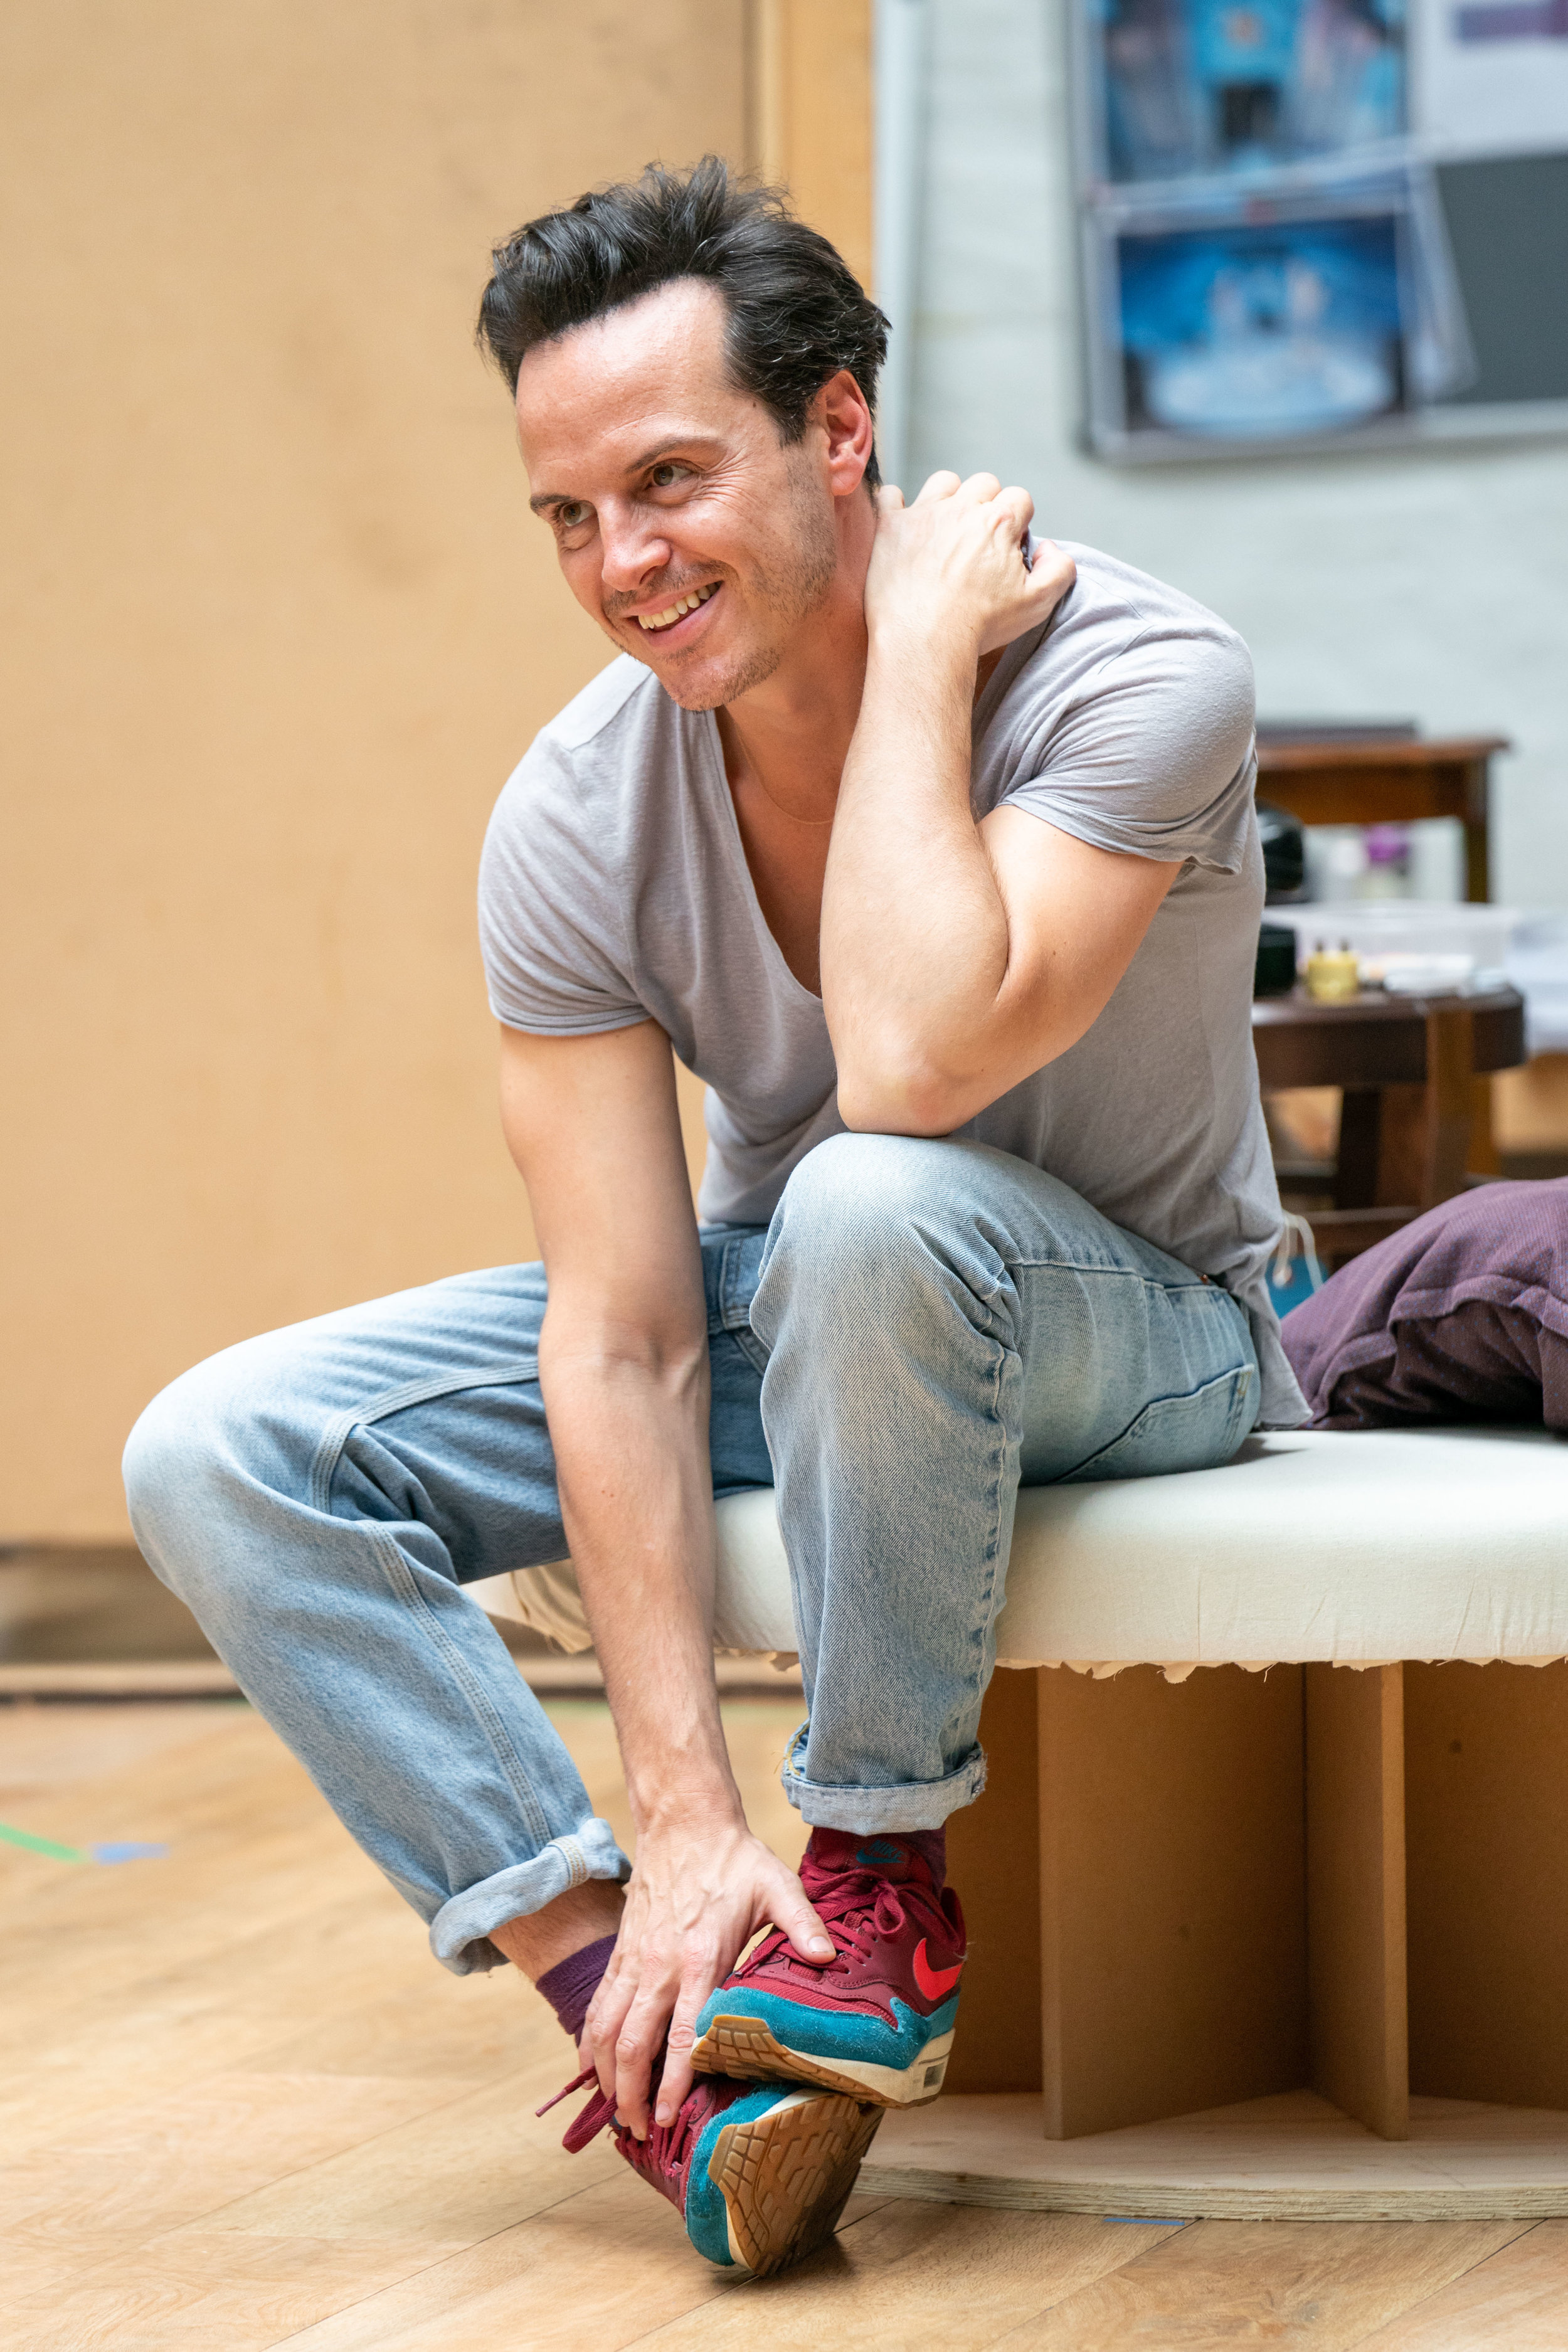 NTL 2019 Present Laughter - Rehearsal Photography by Manuel Harlan - Andrew Scott.jpg